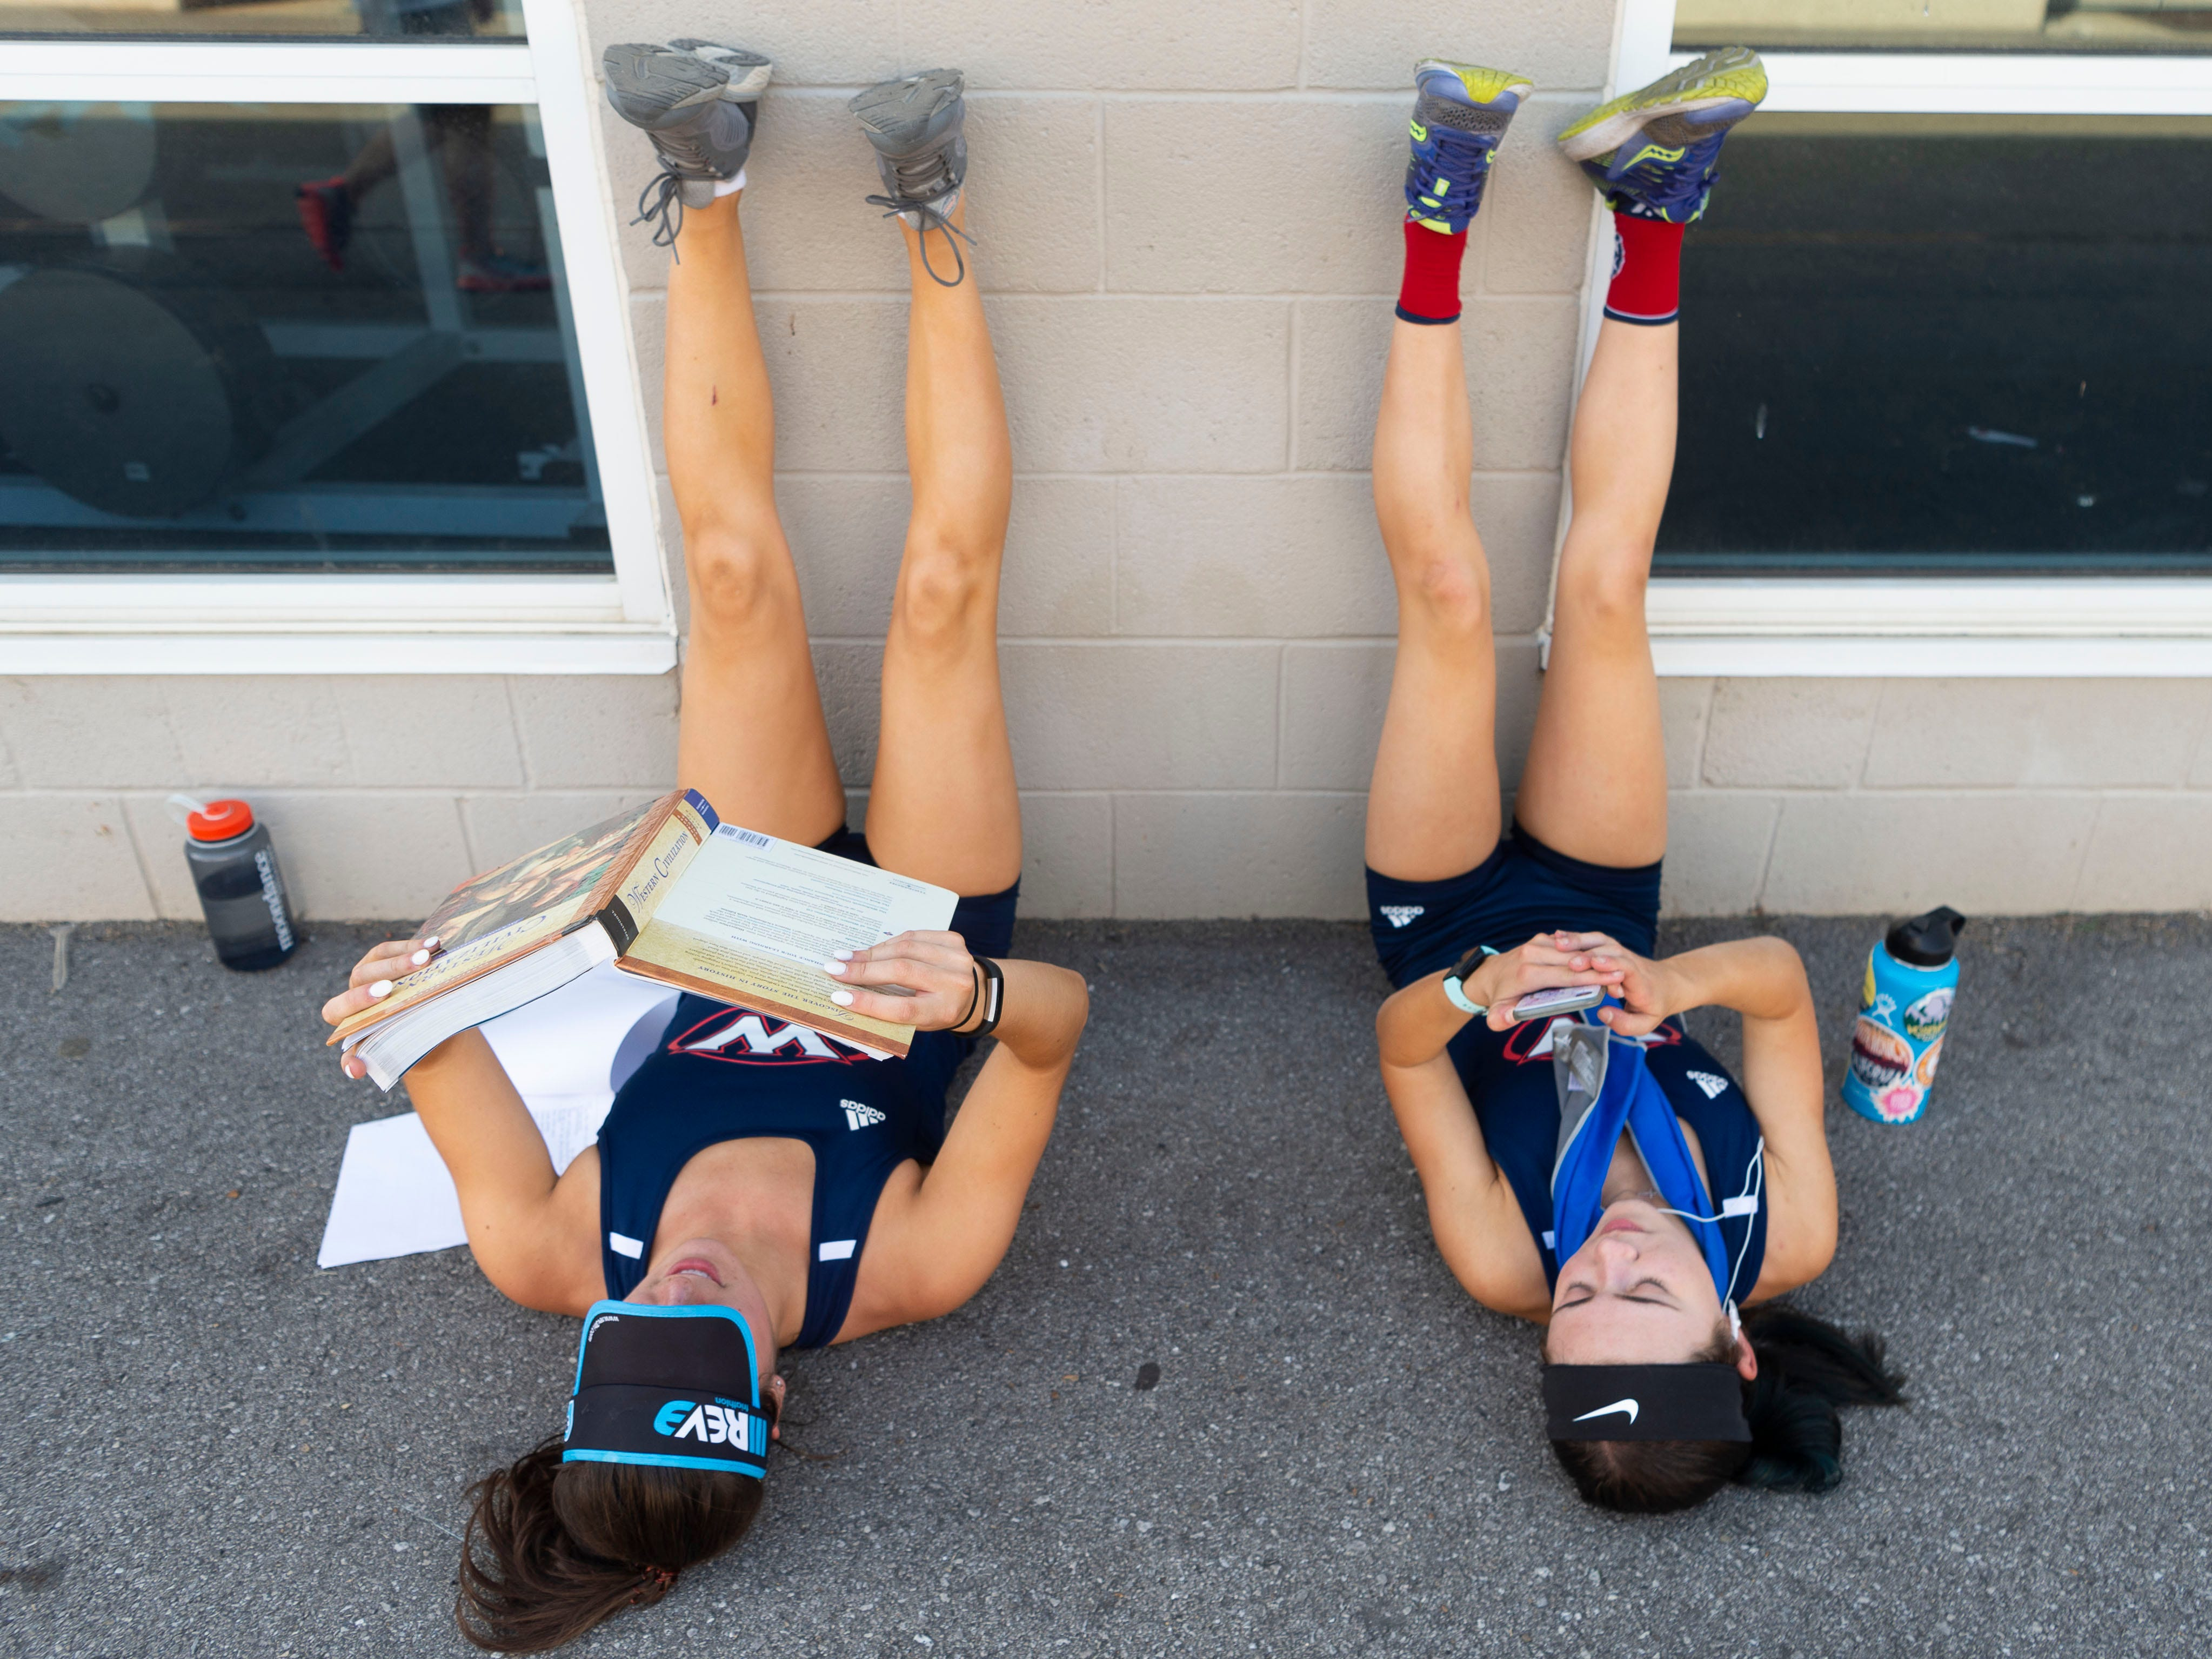 West runners Janie Holecek studies for her AP European history class as she and  teammate Hannah Burkhart rest their legs after helping win the 4x800 meter relay at the KIL Championships at Hardin Valley Academy on Tuesday, April 30, 2019.